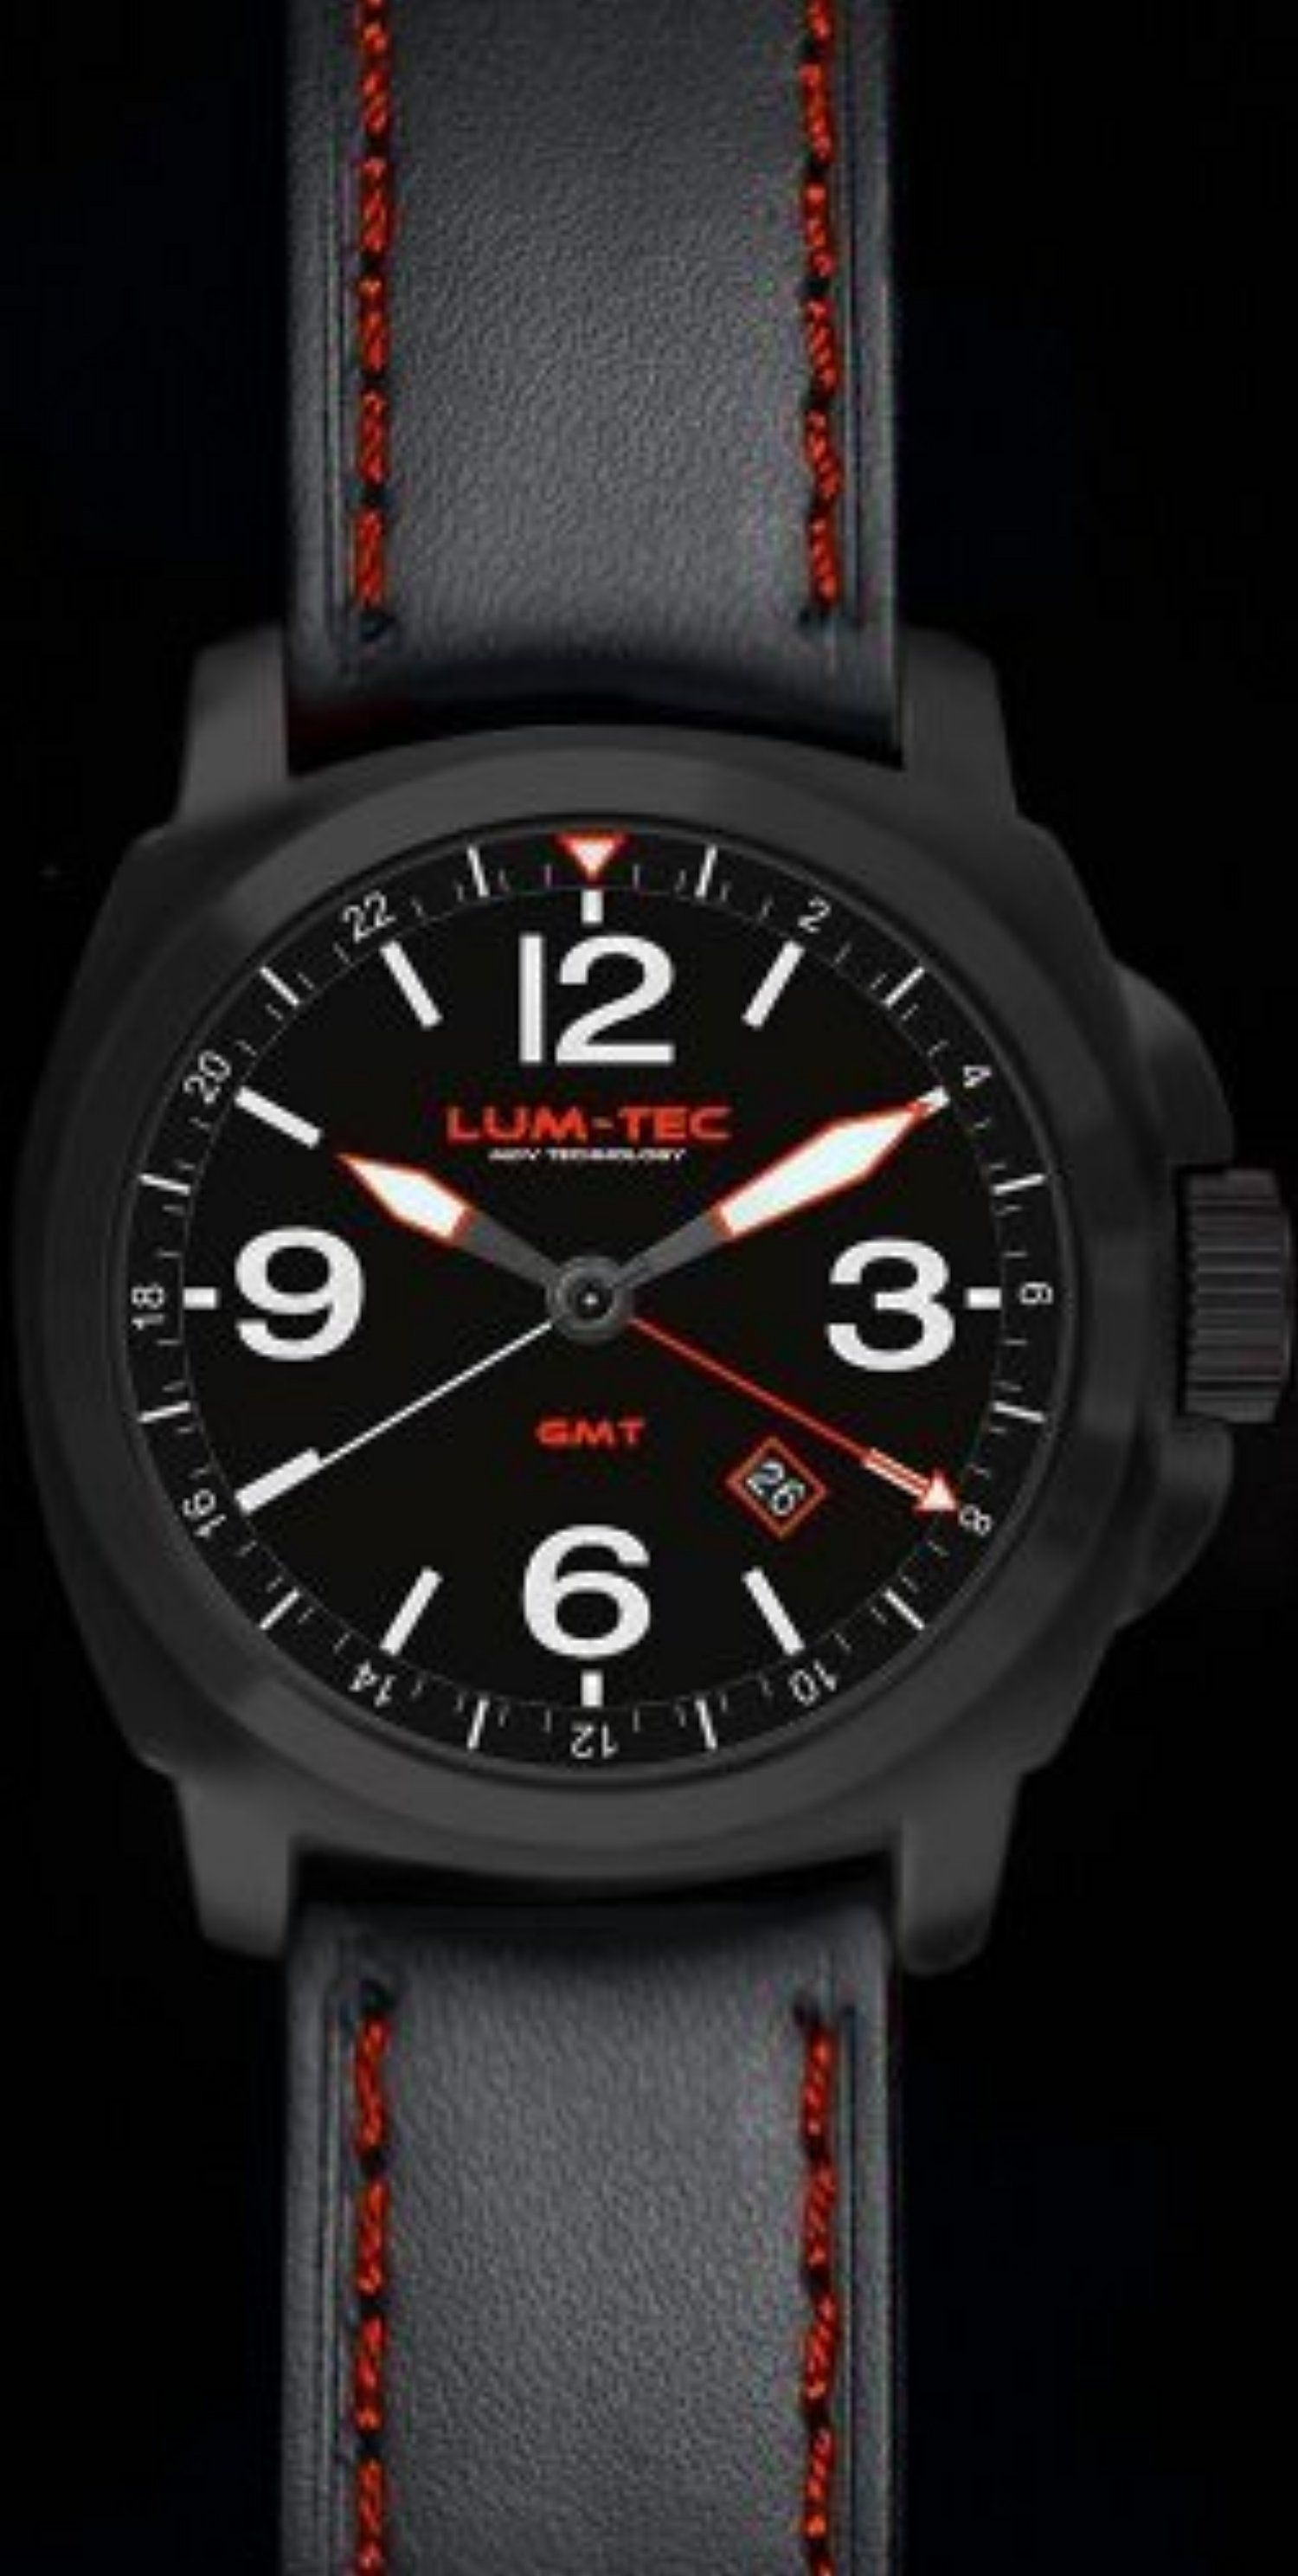 tool luminous watches worlds seiko kinetic apart damasko landmaster